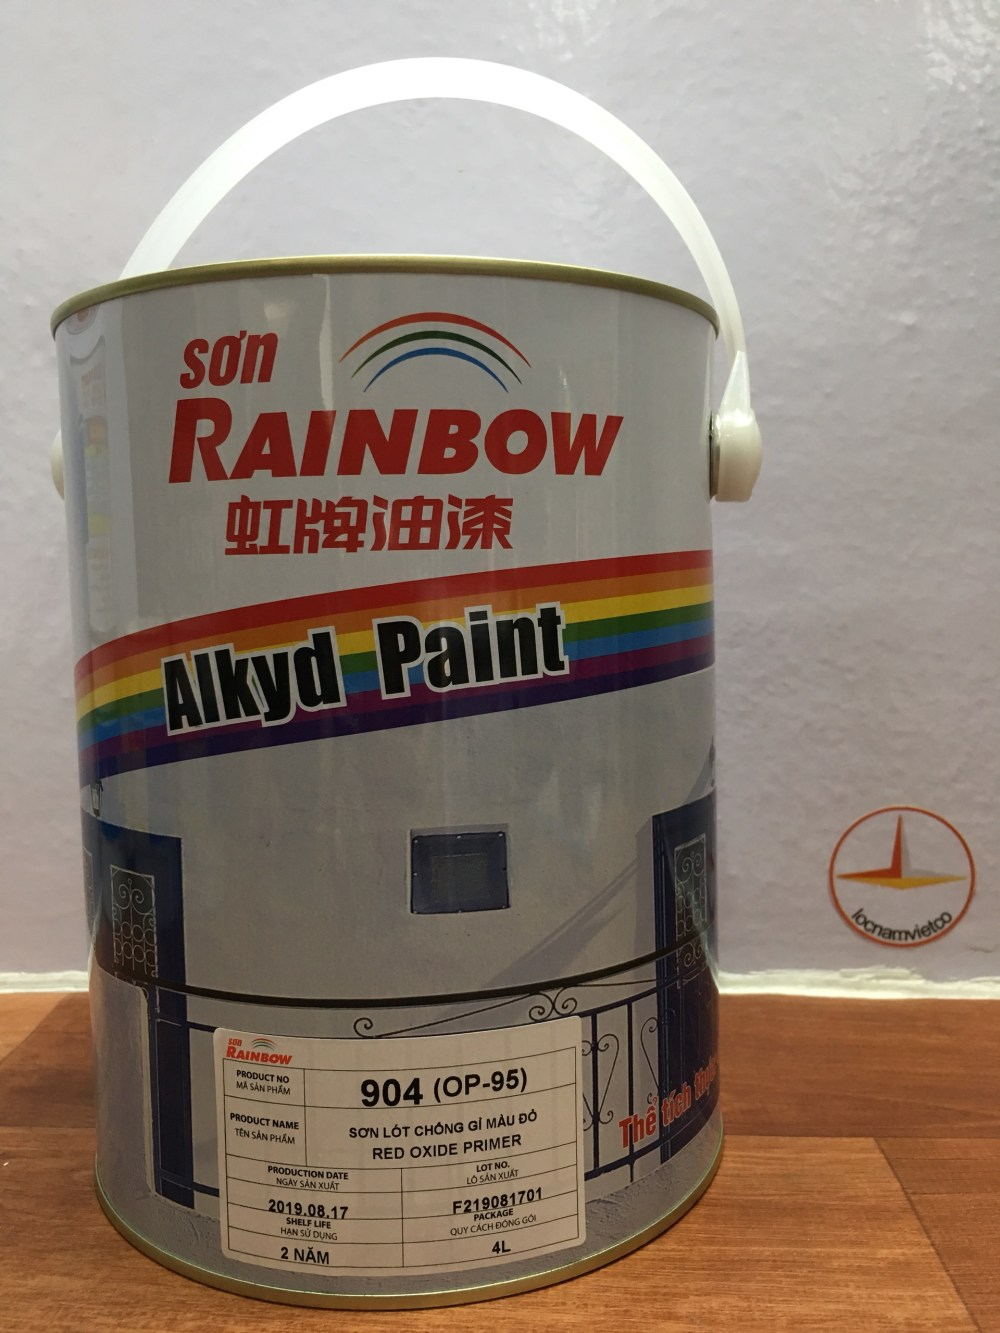 SON LOT CHONG RI MAU DO RAINBOW 904 -4L (1)